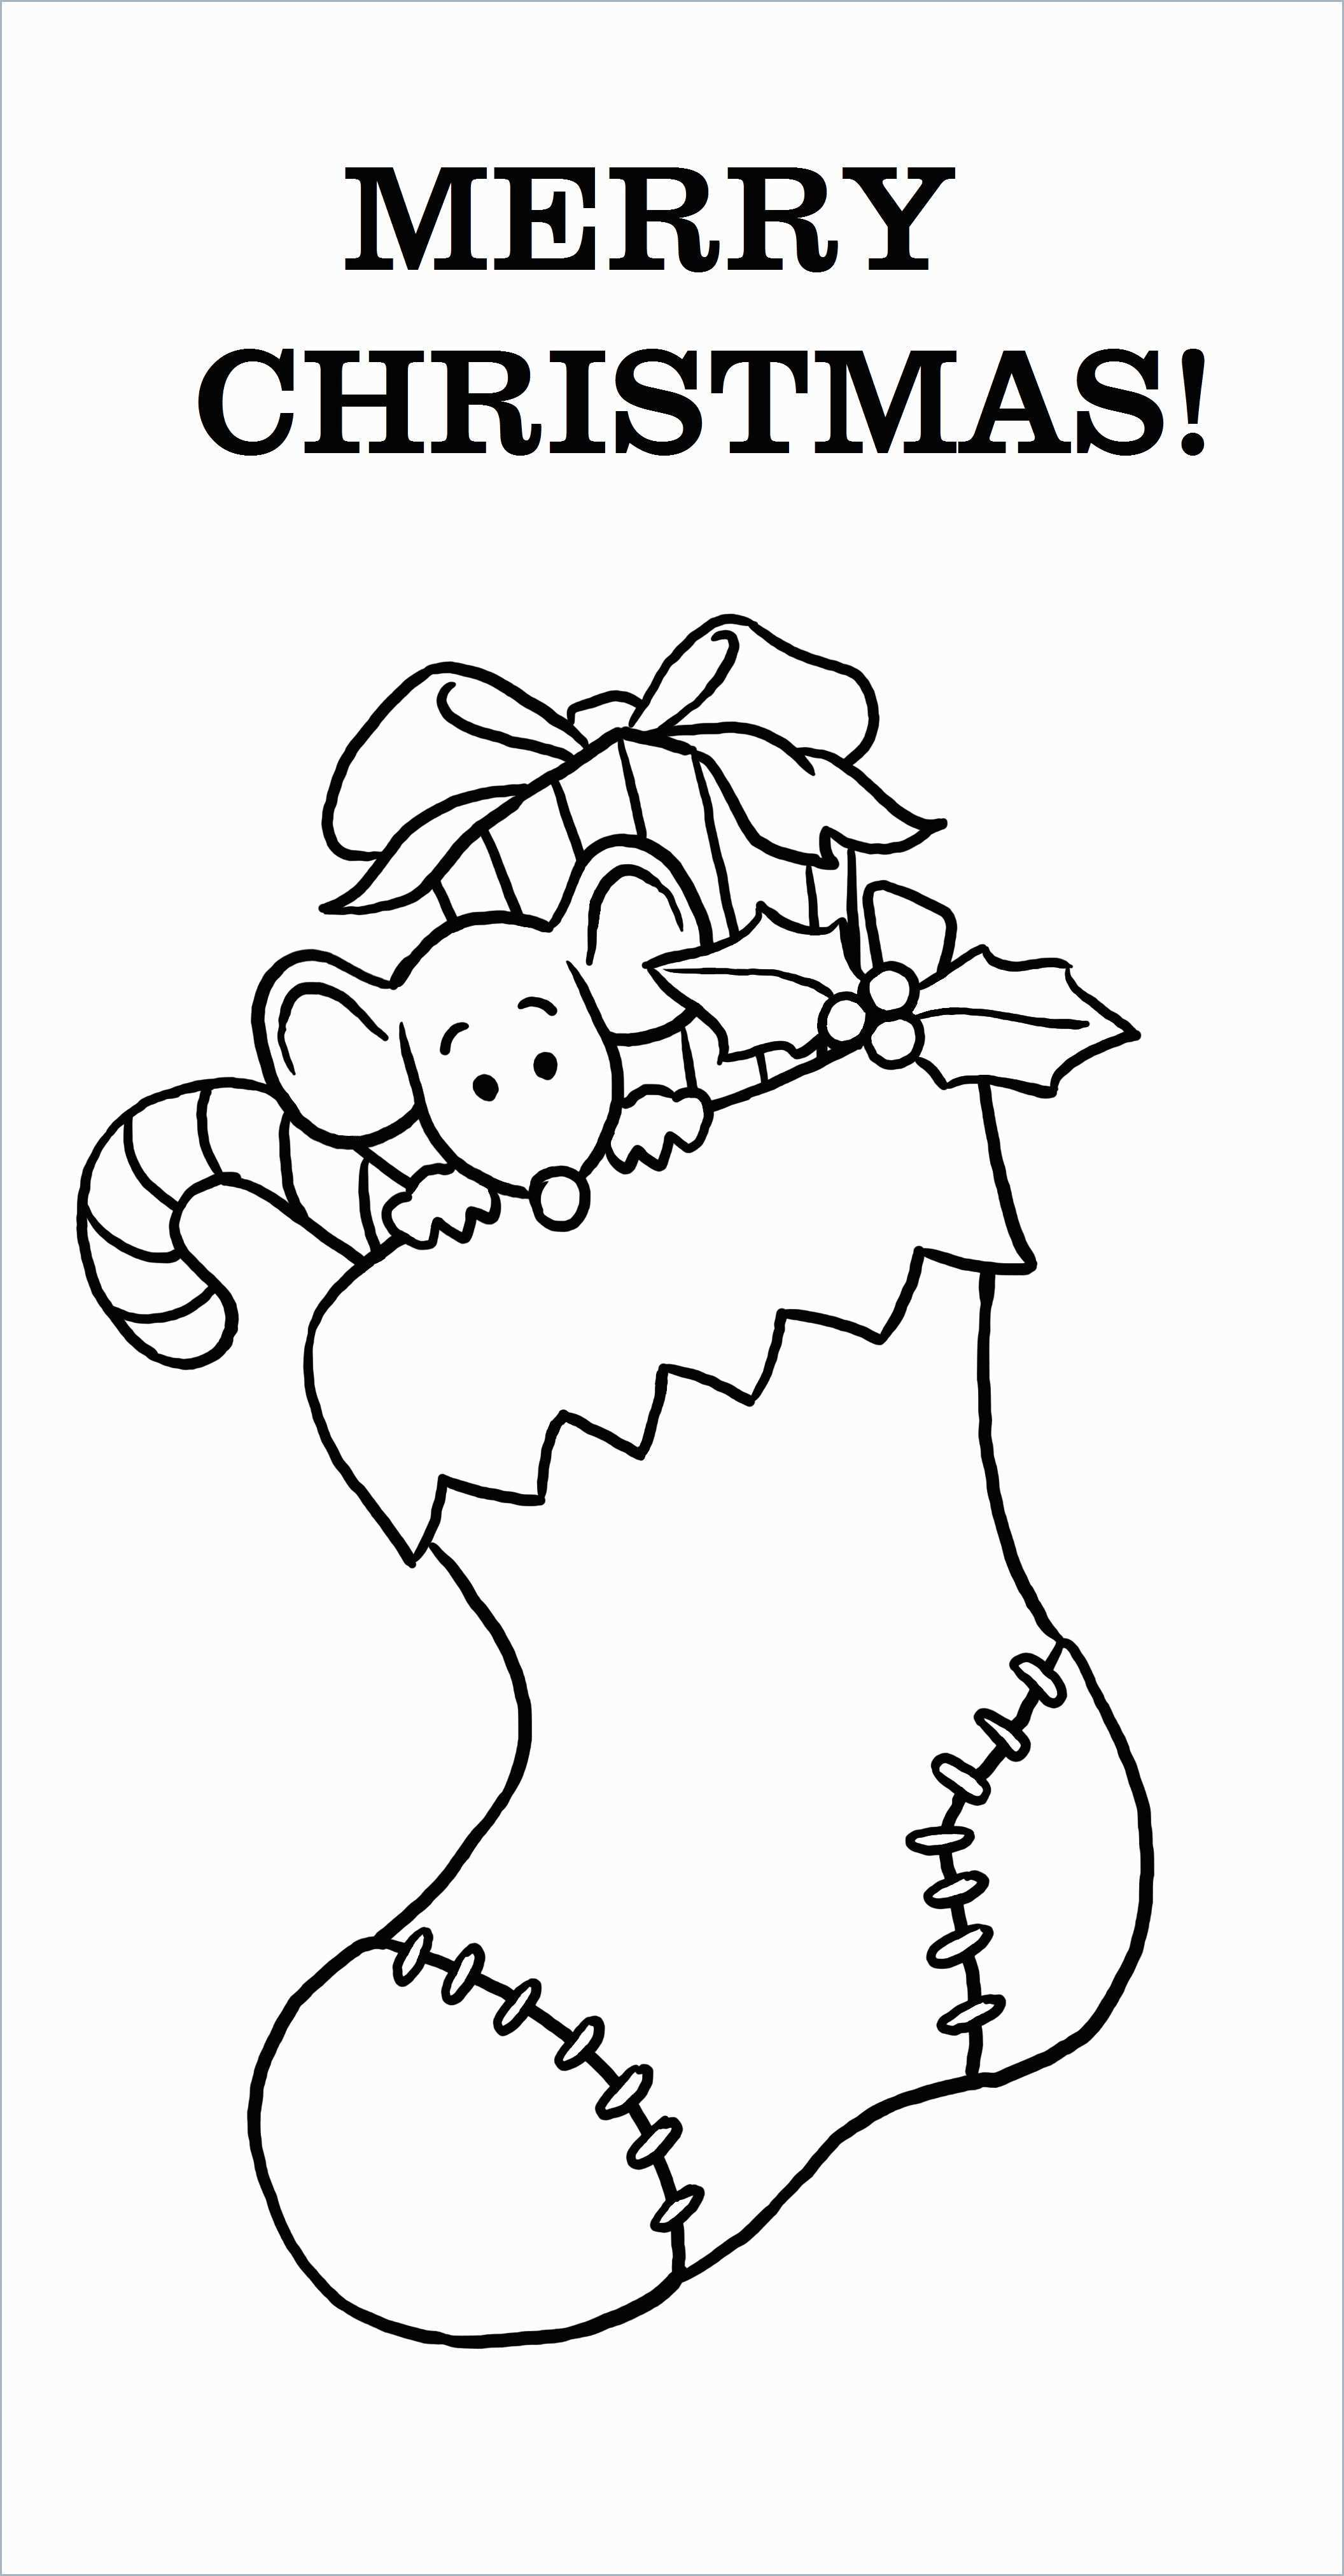 Christmas Coloring Card Printable With Merry Astonishing Dog